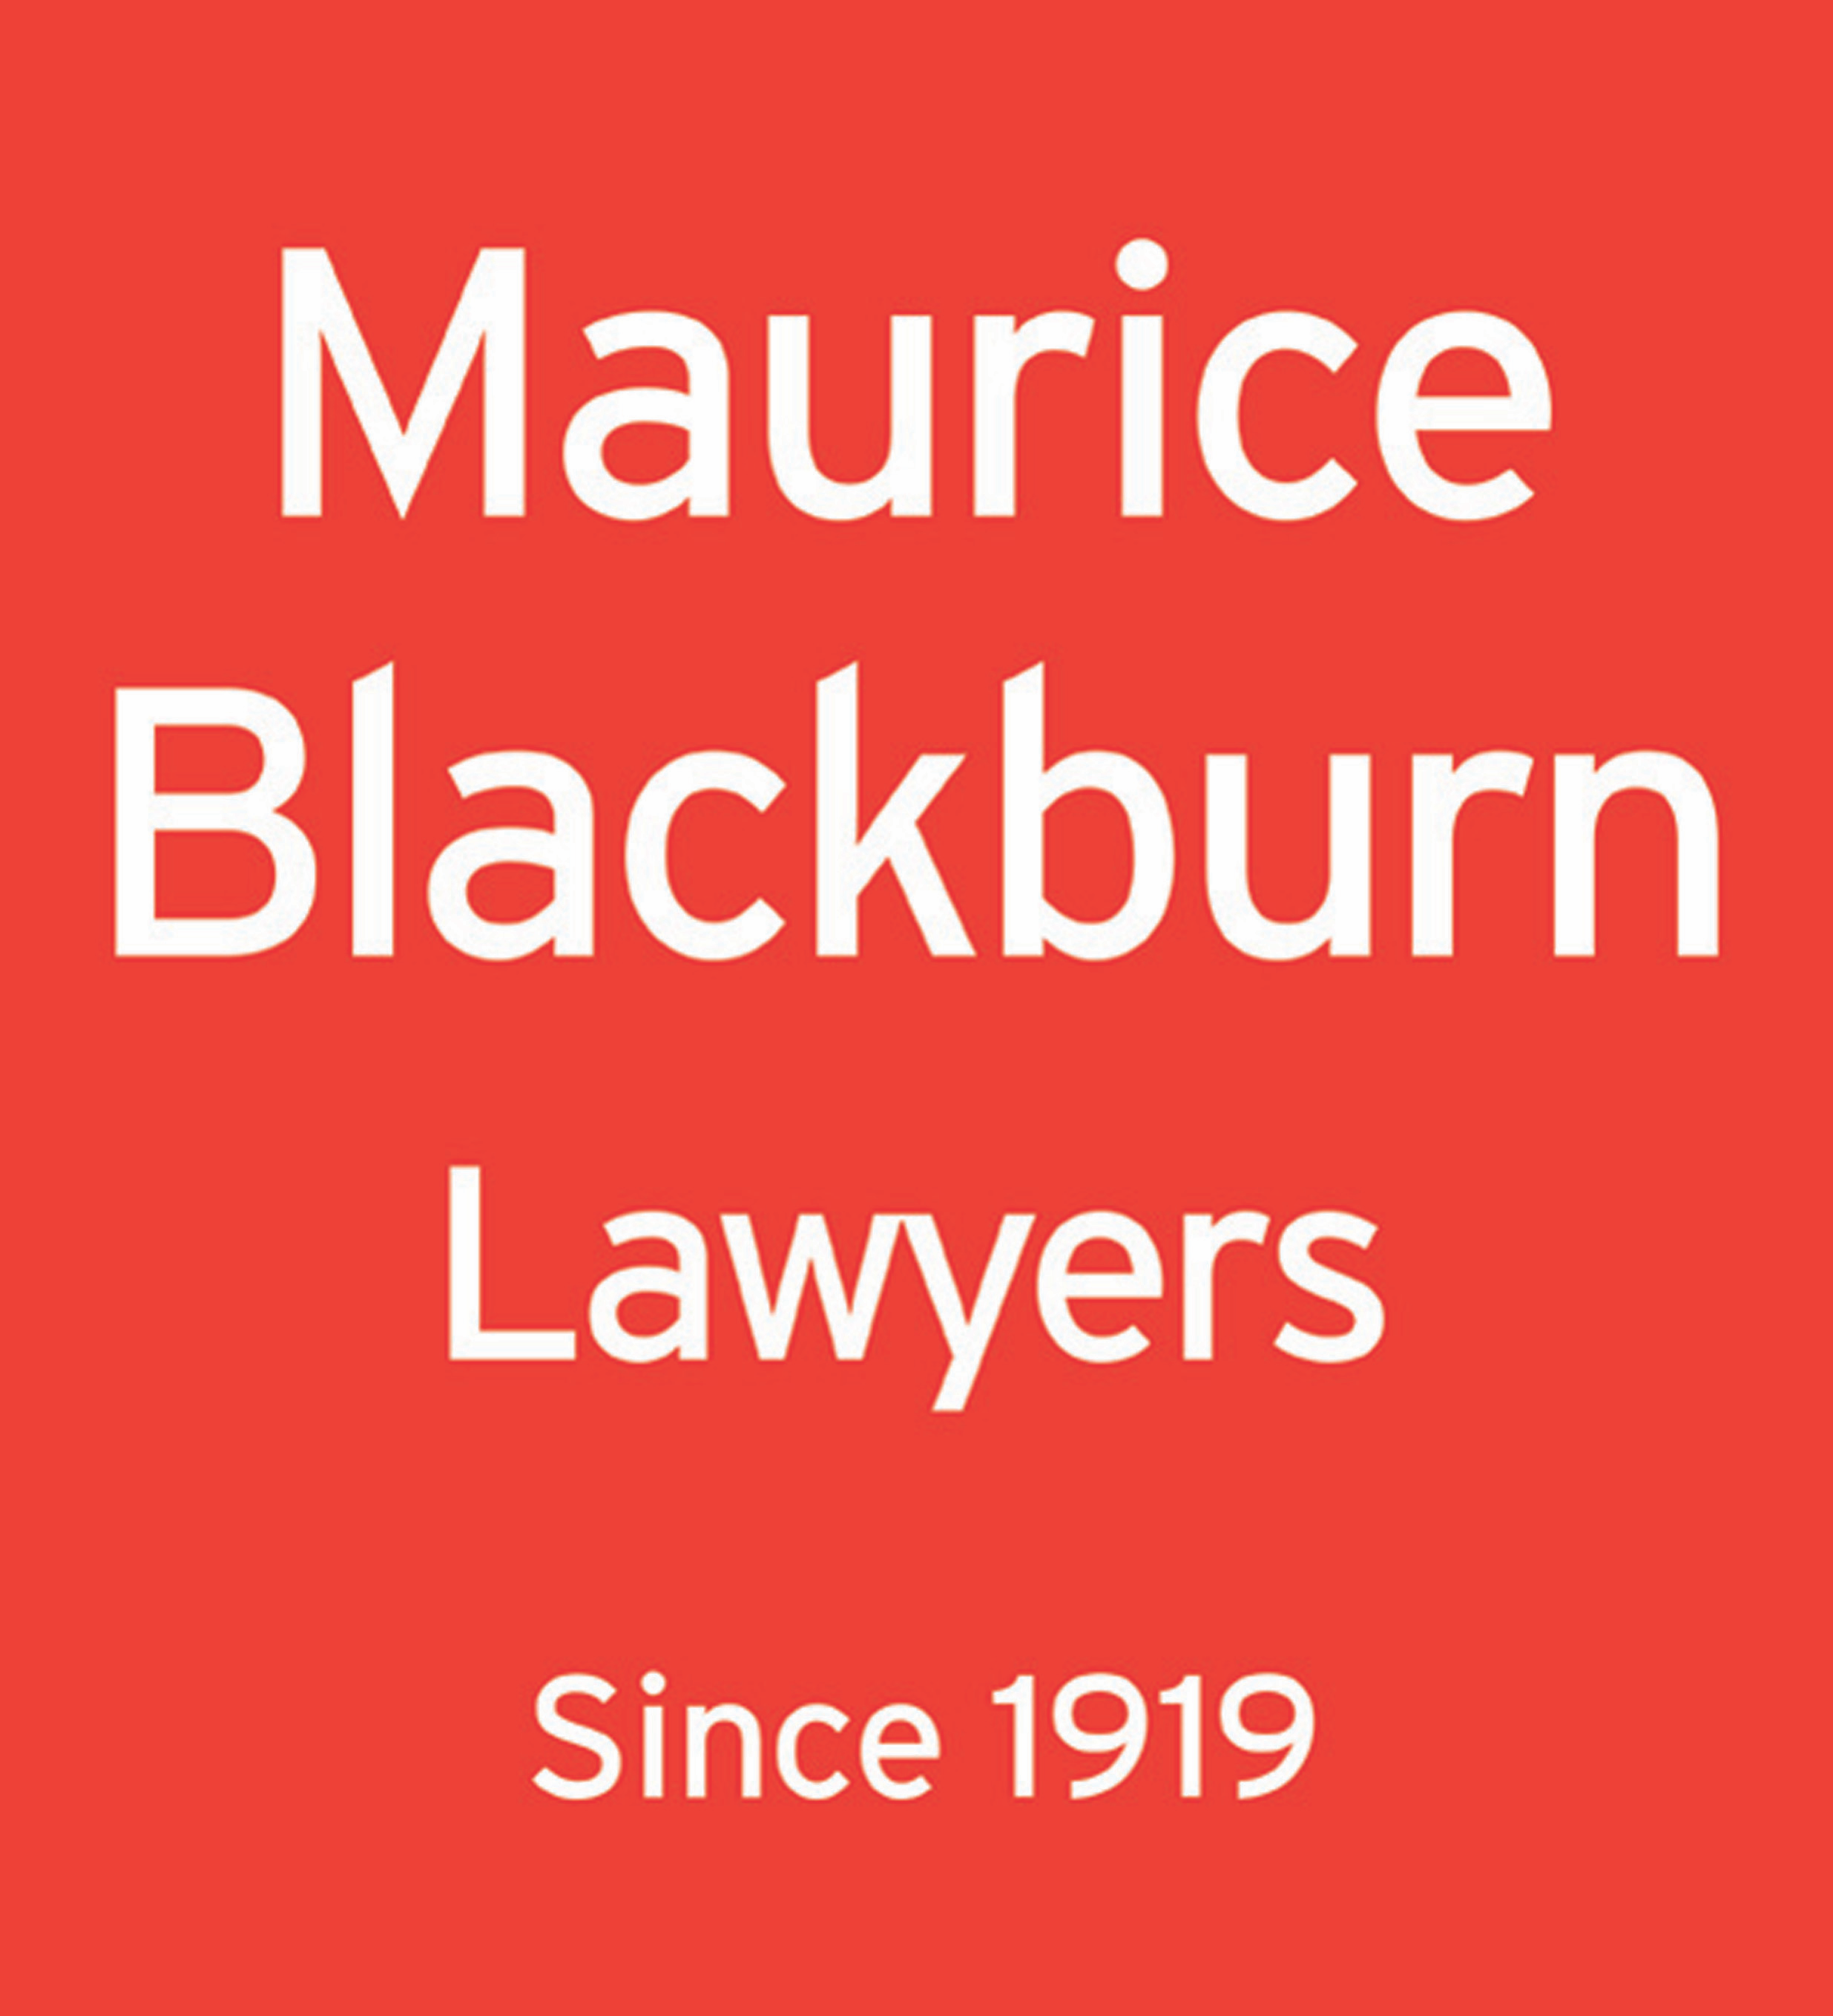 Maurice Blackburn Low res copy